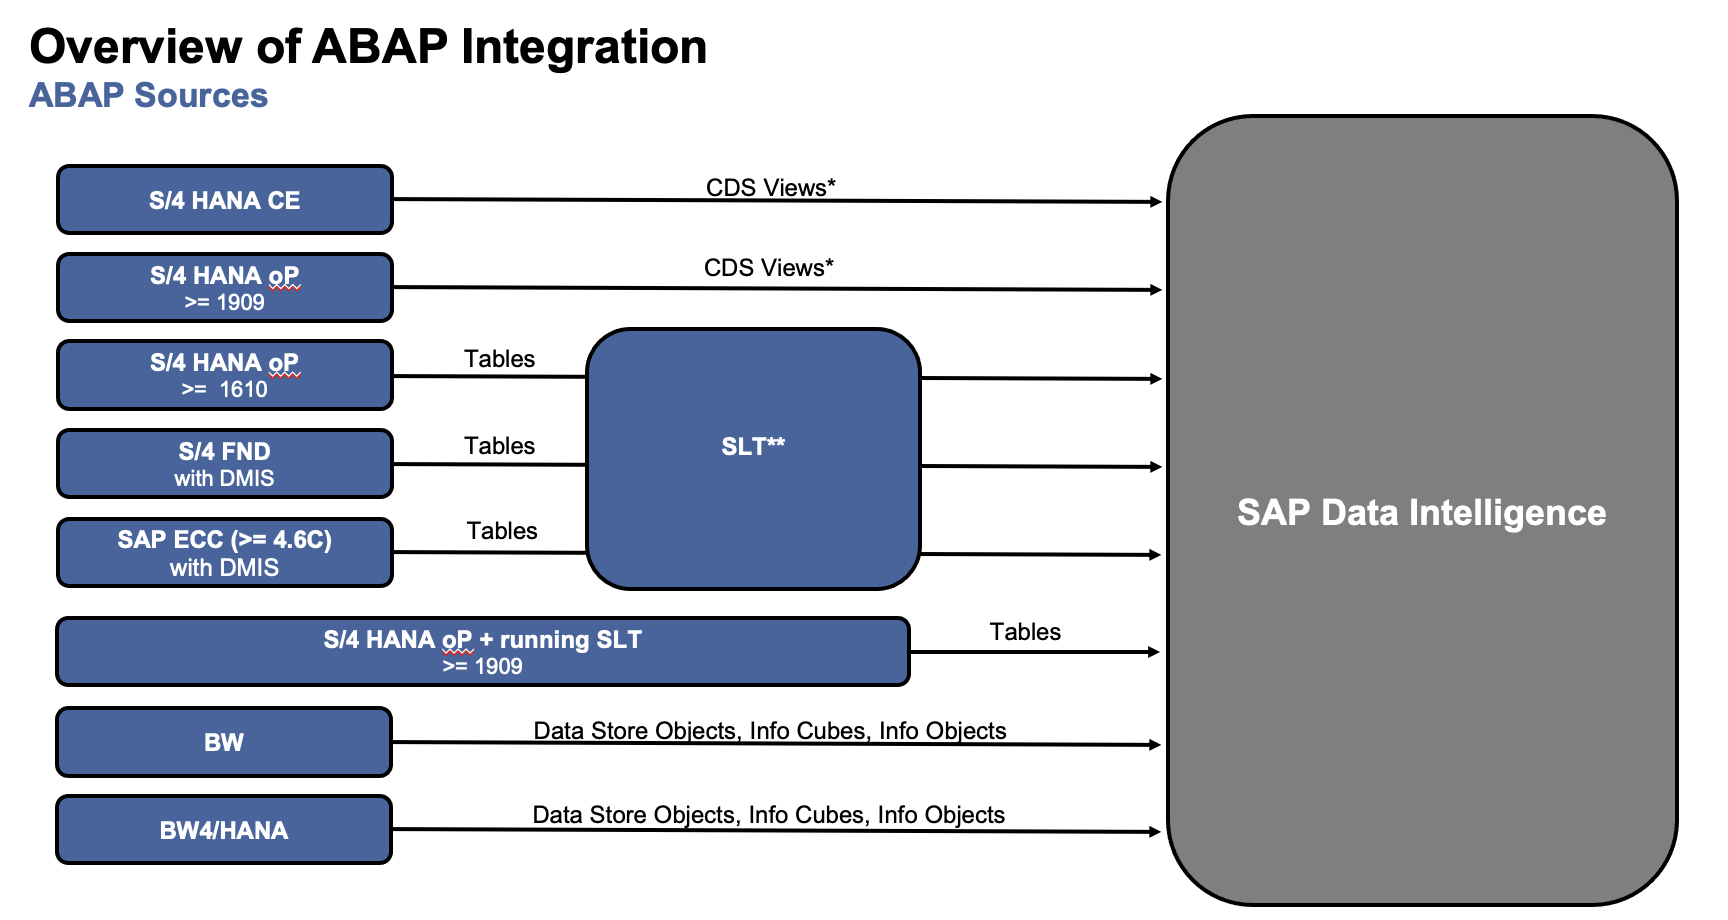 Overview%20for%20ABAP%20Integration%20Scenarios